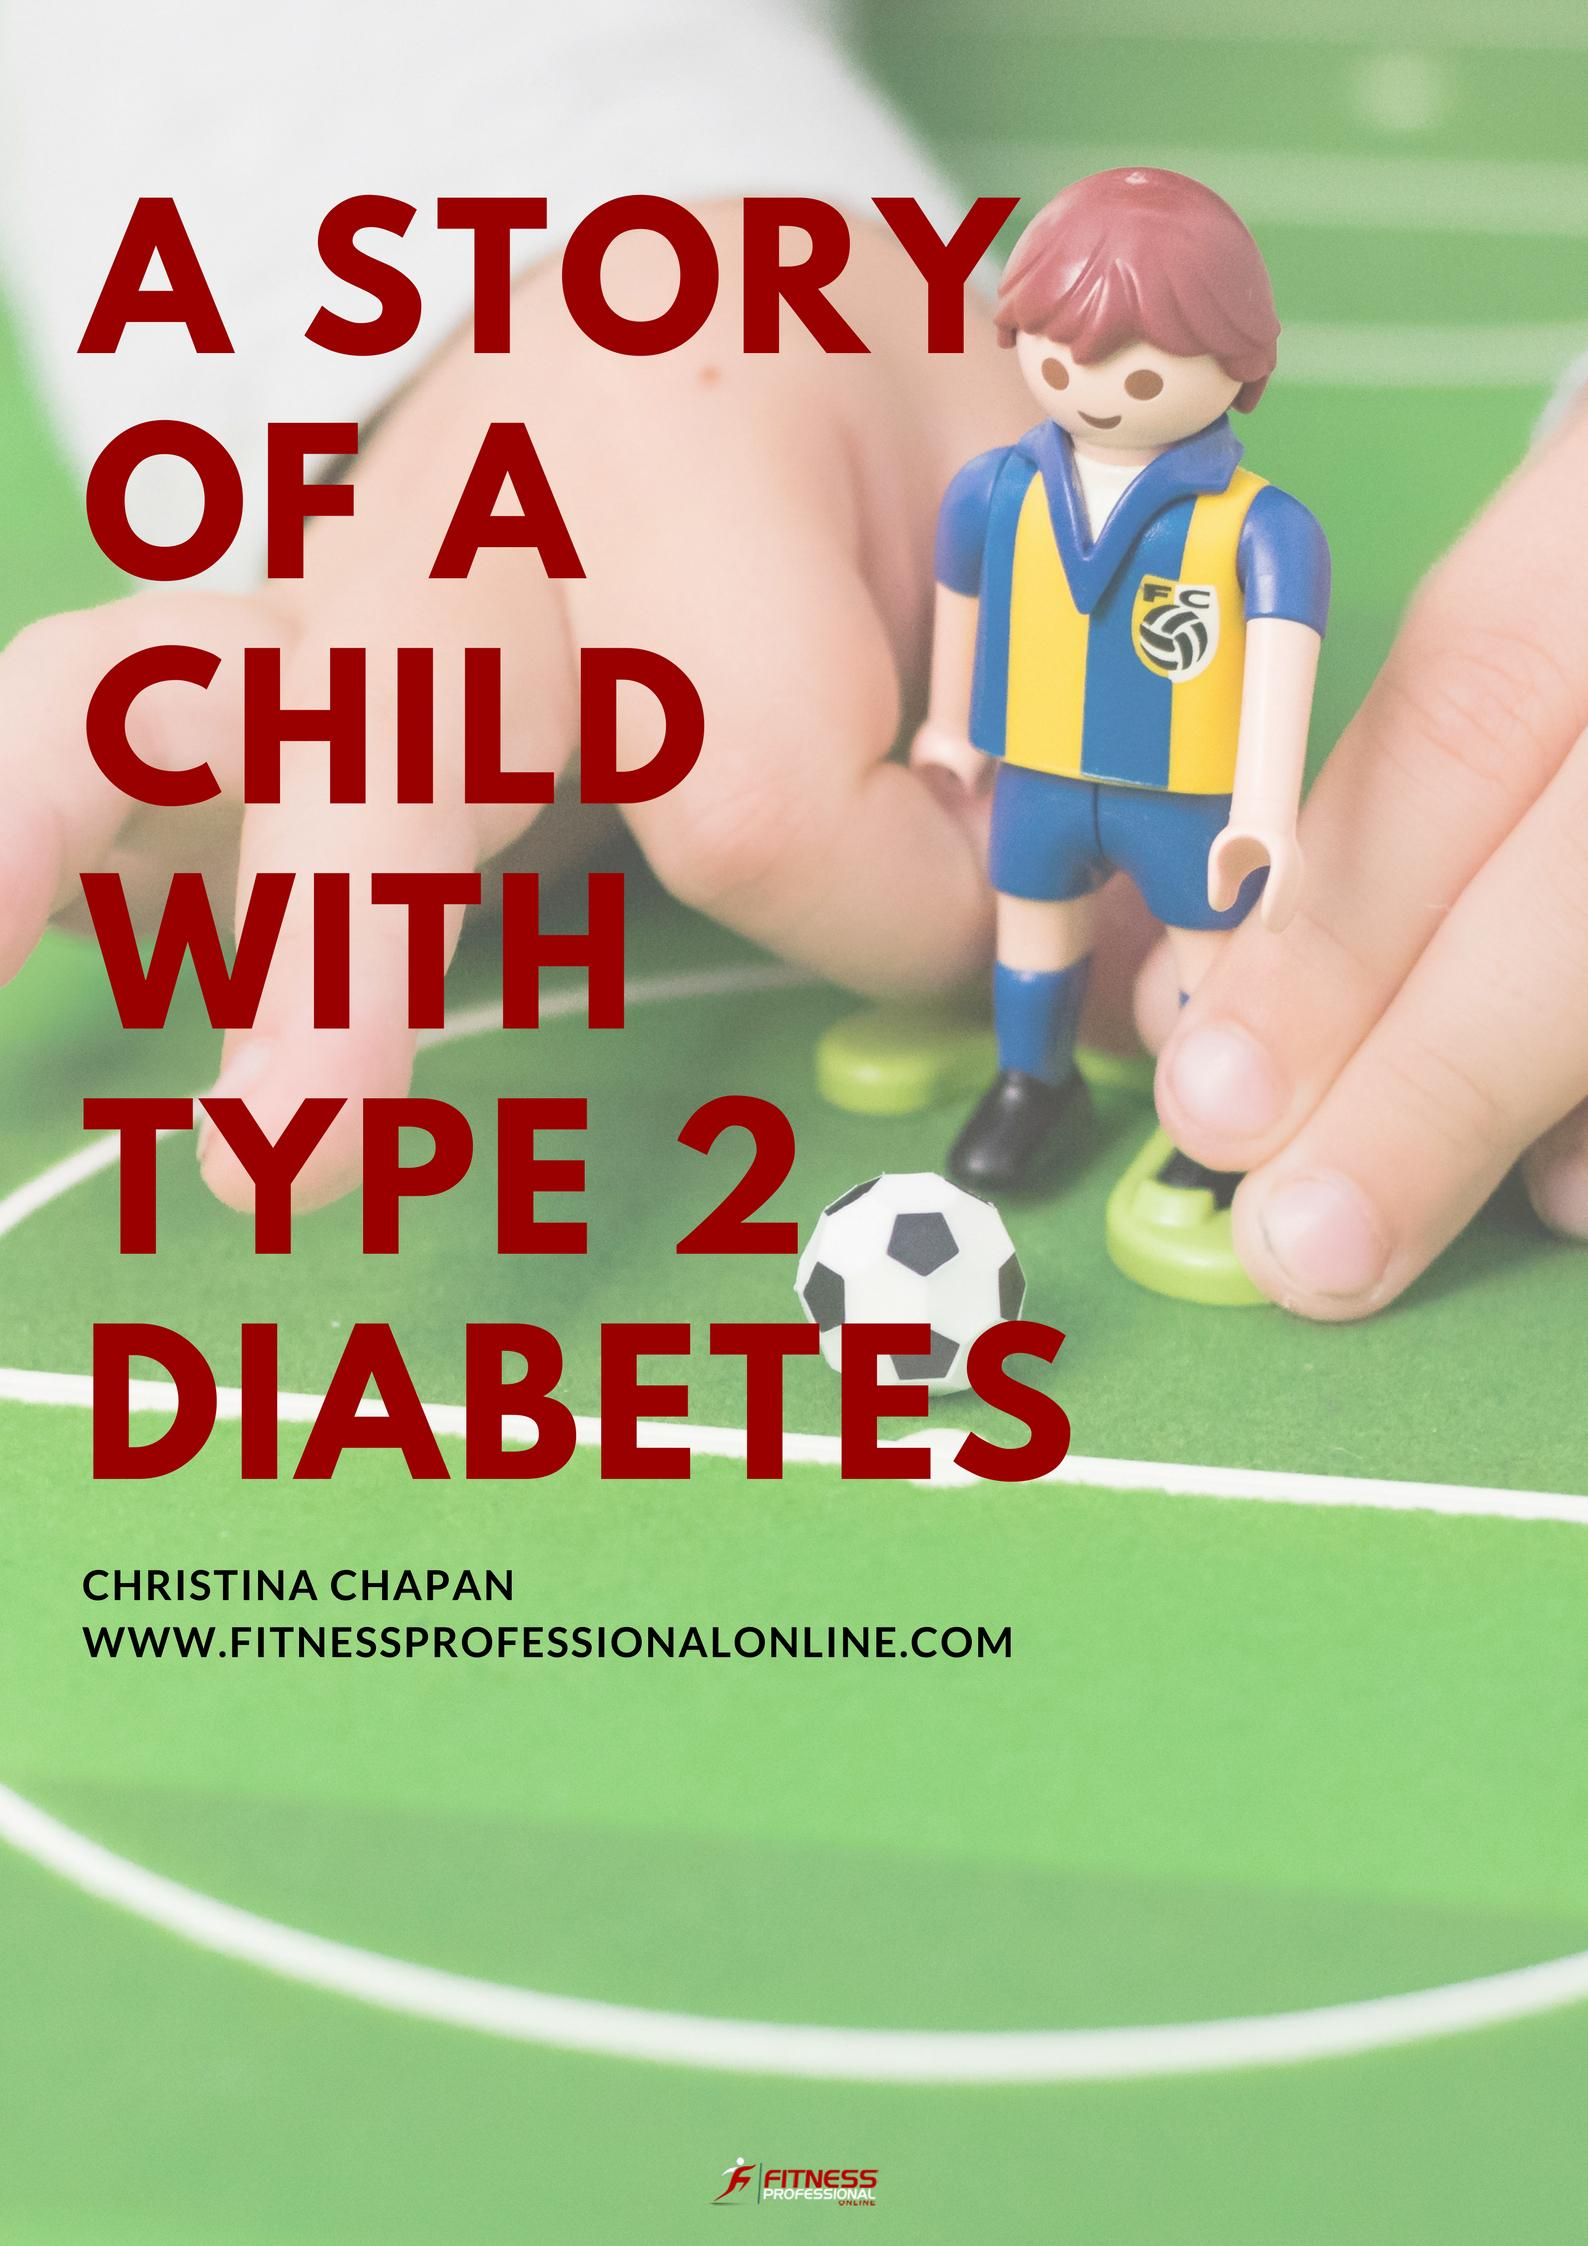 Diabetes 2 is a reversible disorder and complications can be reversed with a bit of change.